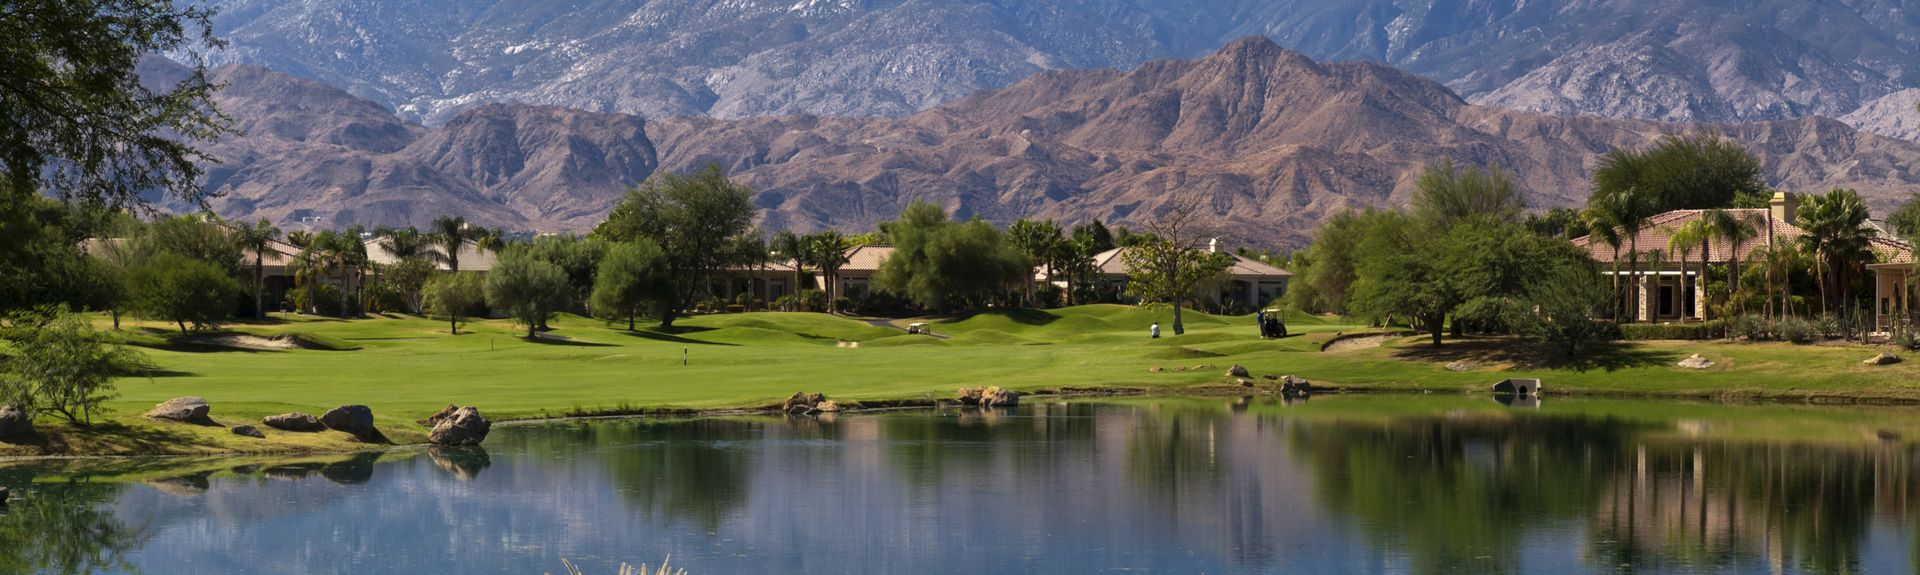 Rancho Mirage, CA, USA